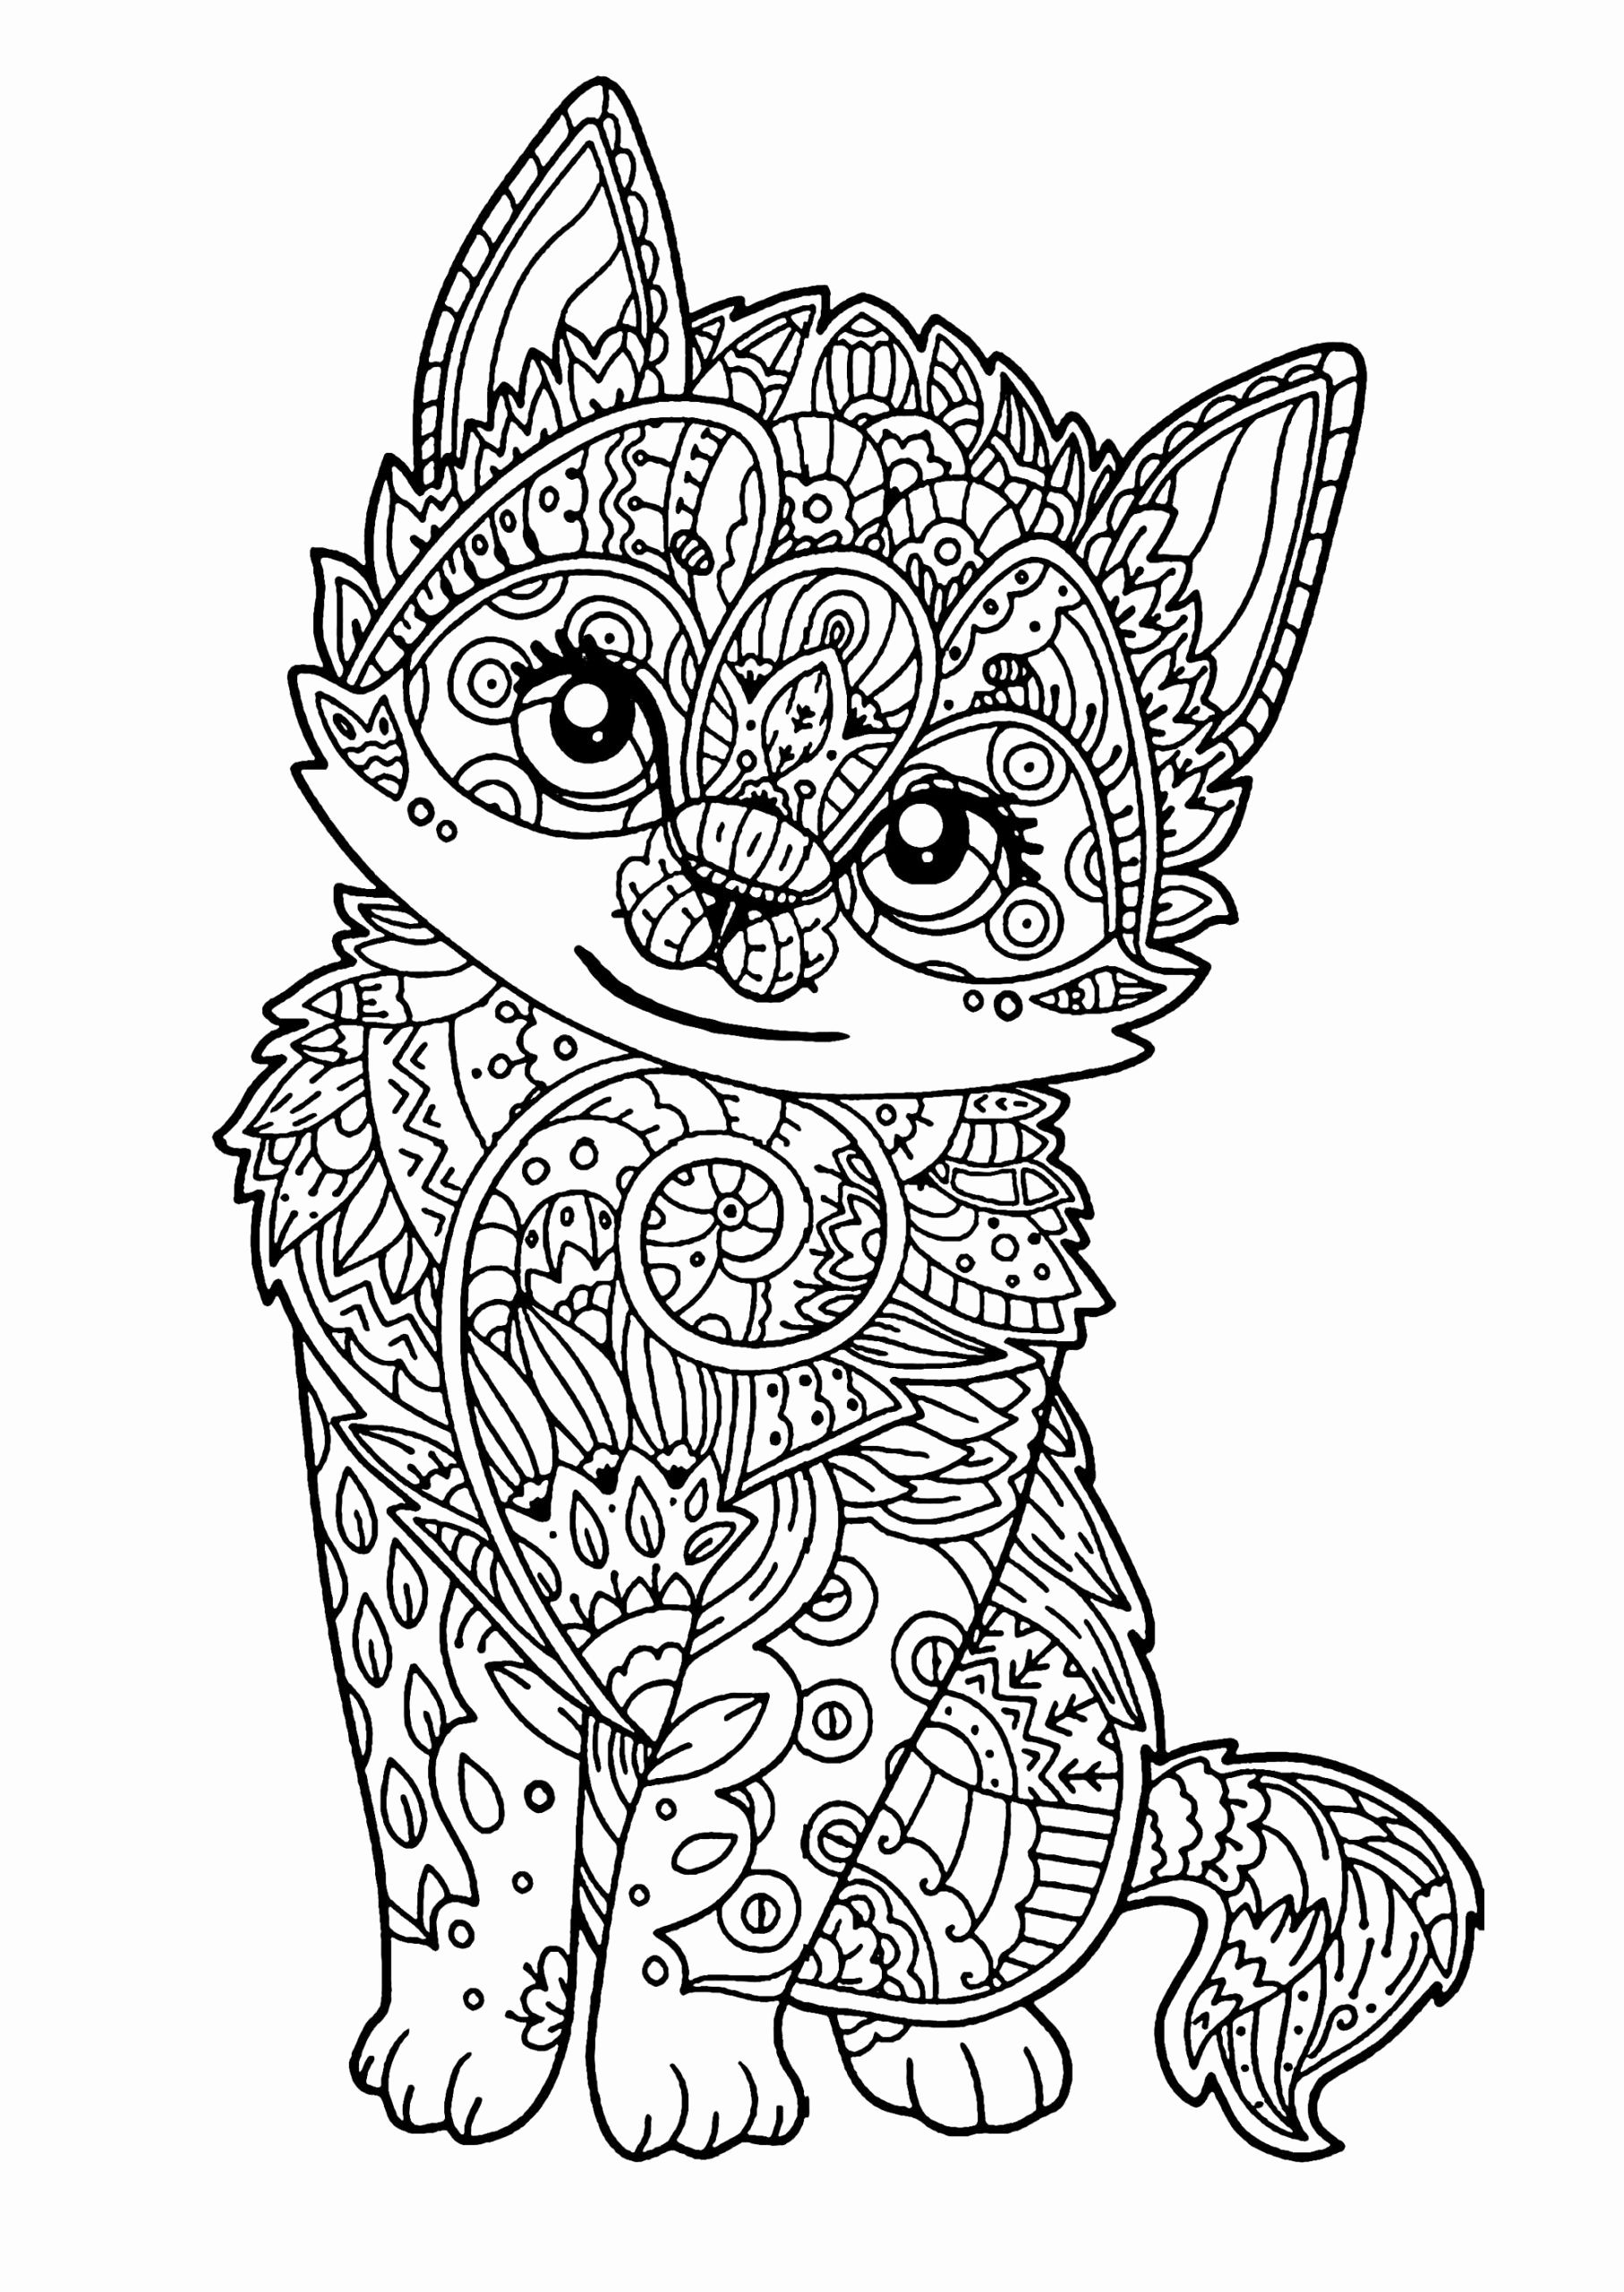 Printable Coloring Pages For Kids Cat Emoji Kitty Coloring Cat Coloring Page Cat Coloring Book